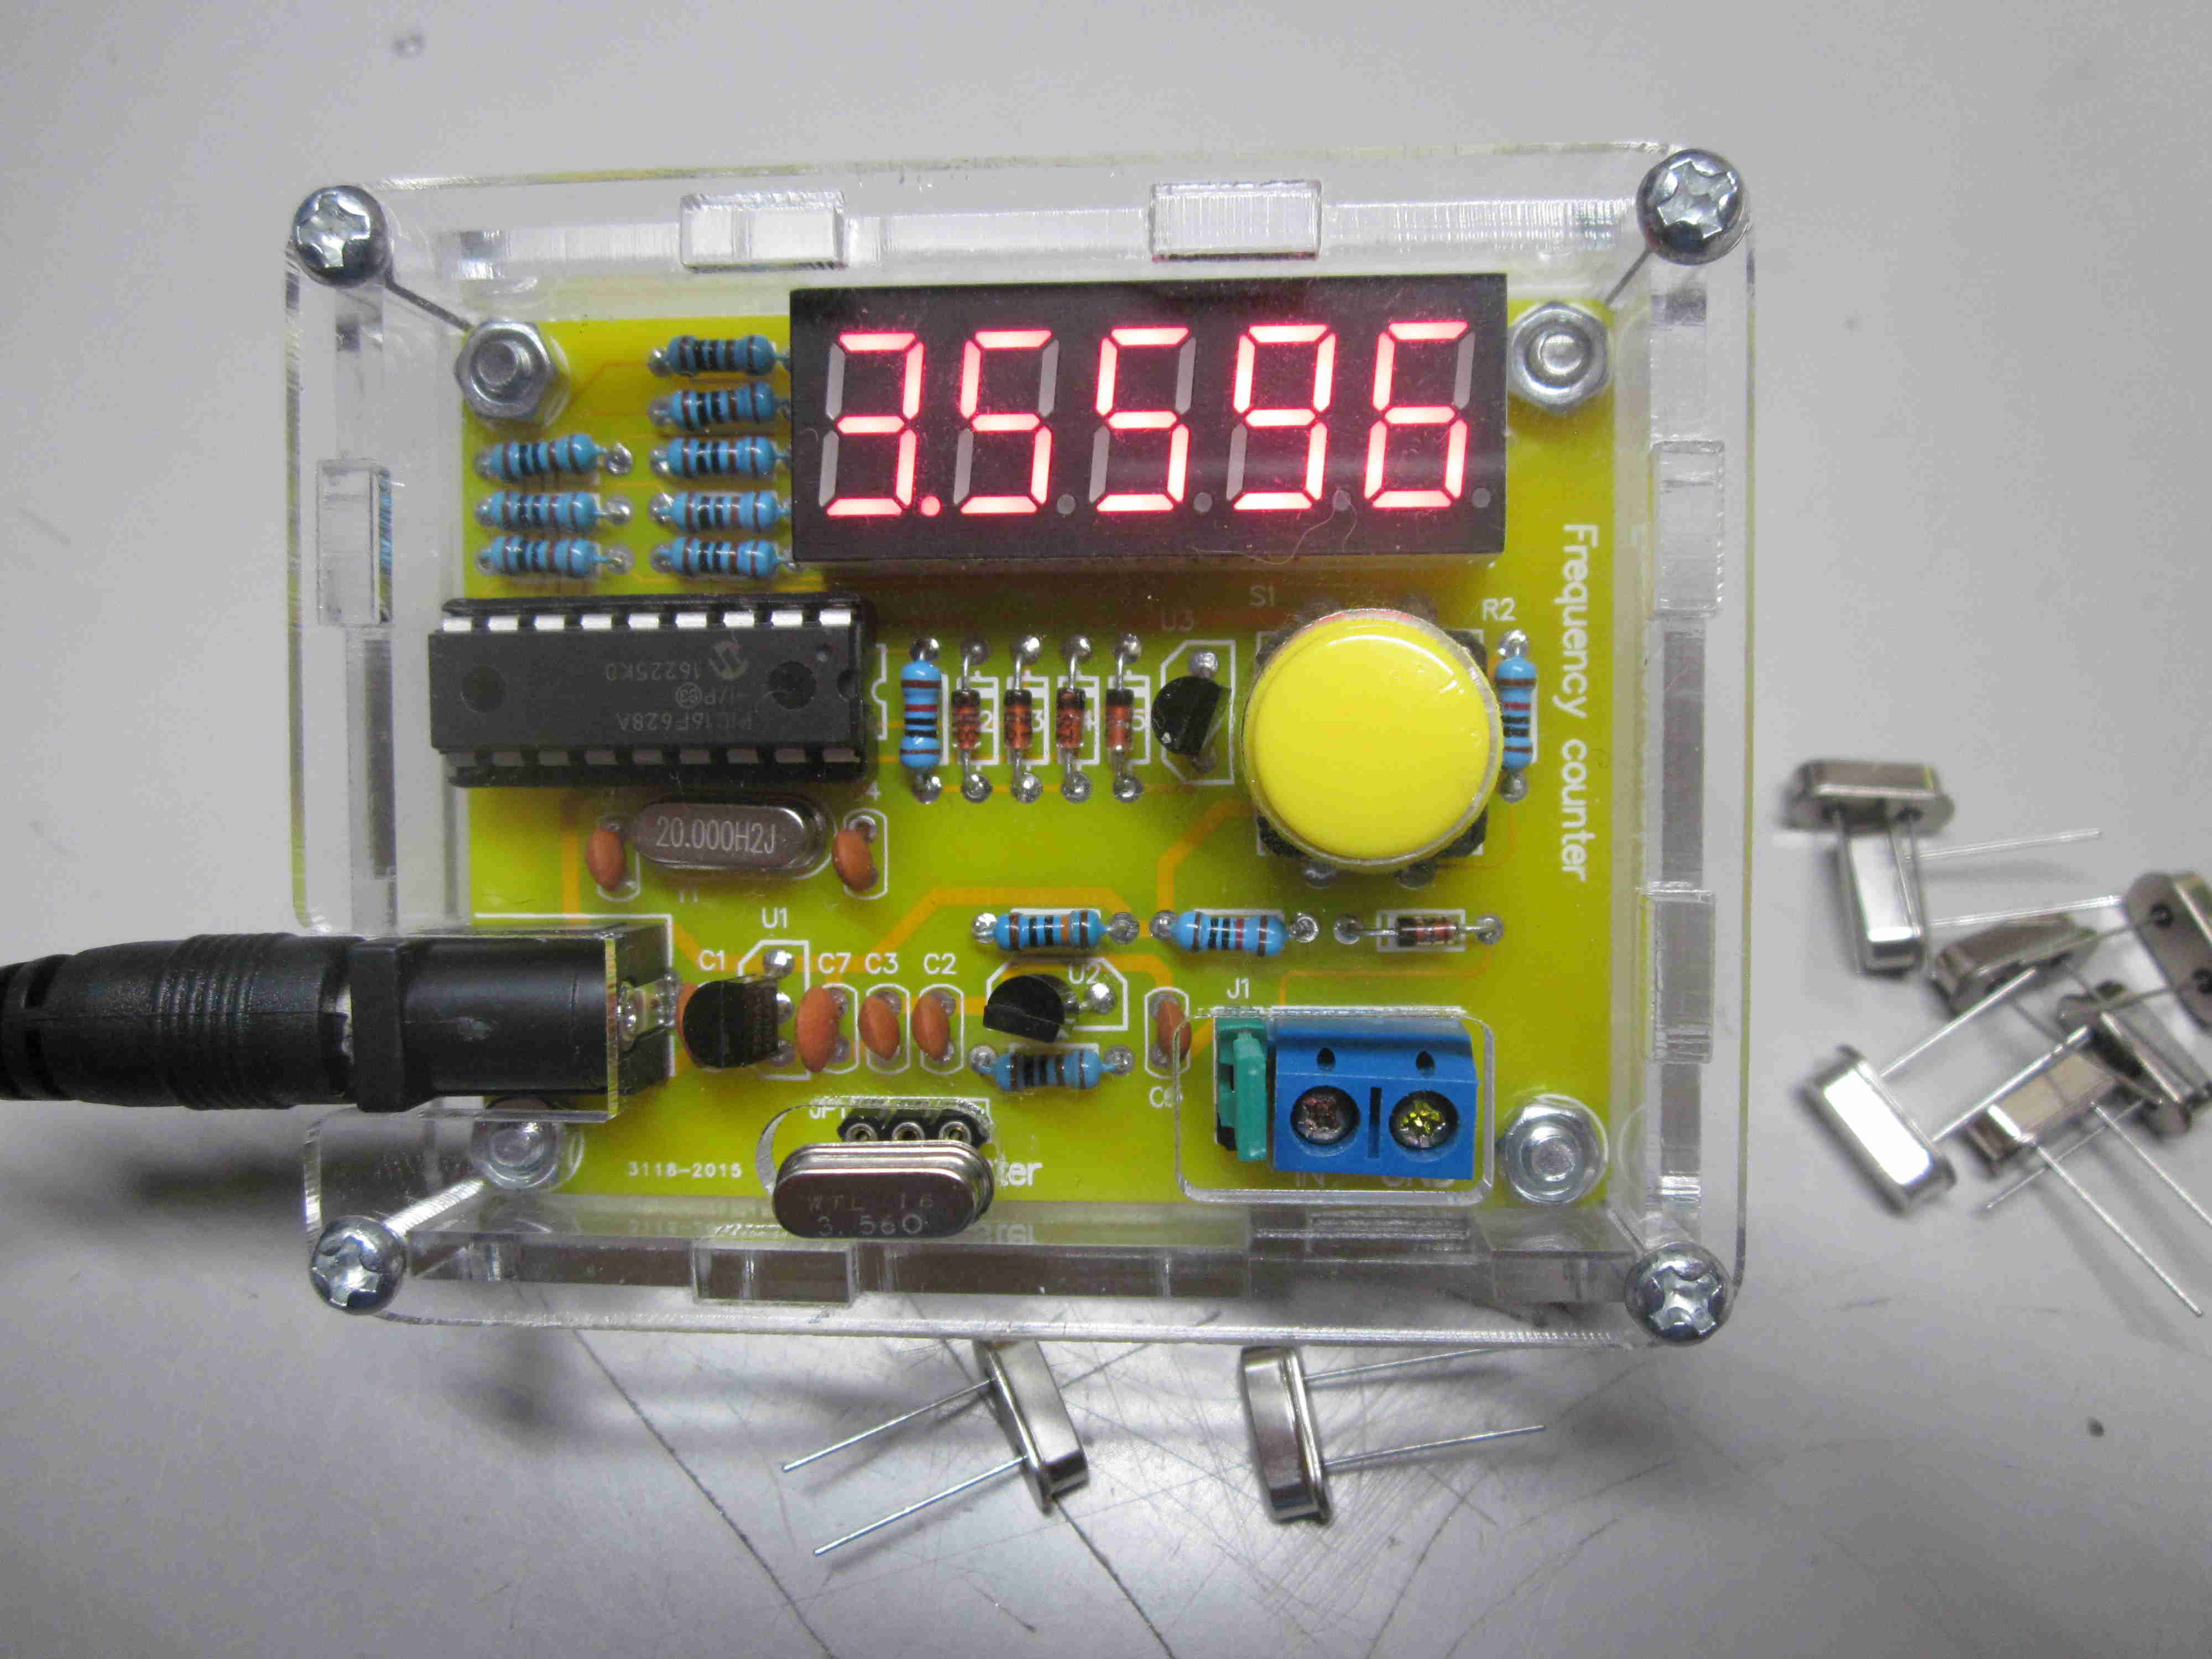 Crystal Tester Counter 3rd Planet Solar Kc9on Frequency Schematic Kit Cost 10